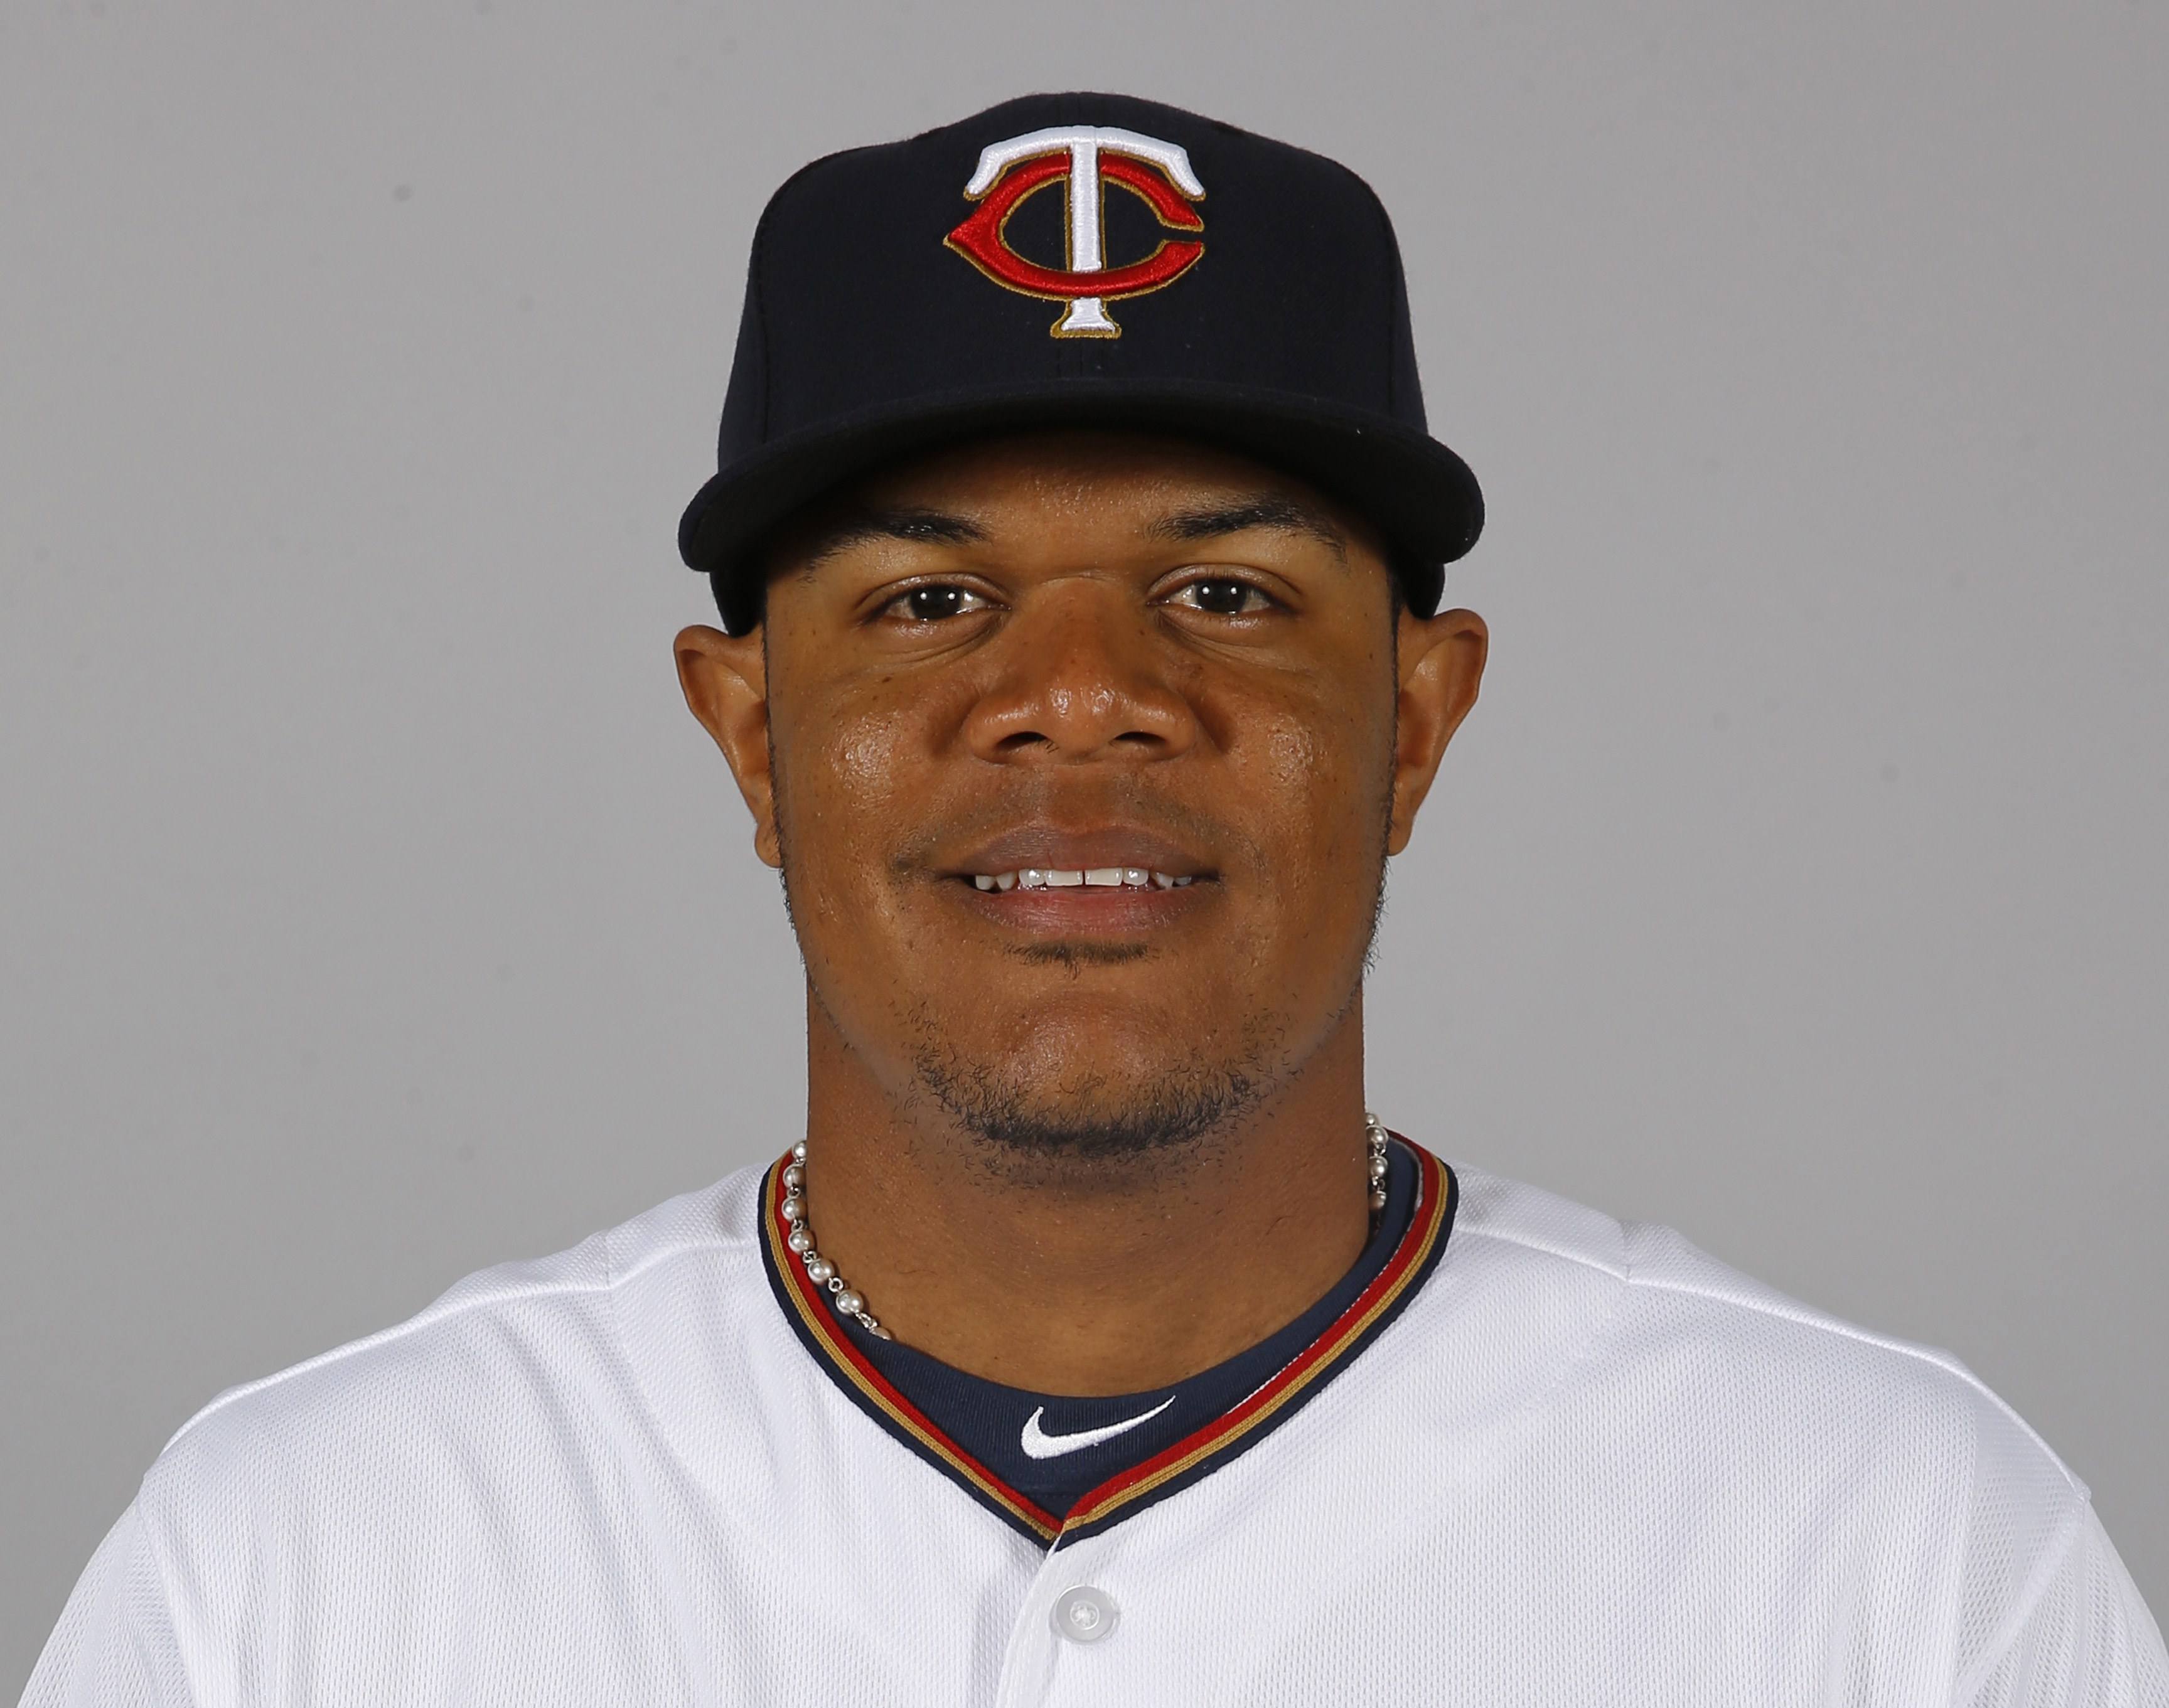 FILE - This is a 2016 file photo showing Reynaldo Rodriguez of the Minnesota Twins baseball team. Minnesota Twins outfielder Reynaldo Rodriguez has been suspended 80 games following a positive test under baseball's minor league drug program. The commissio